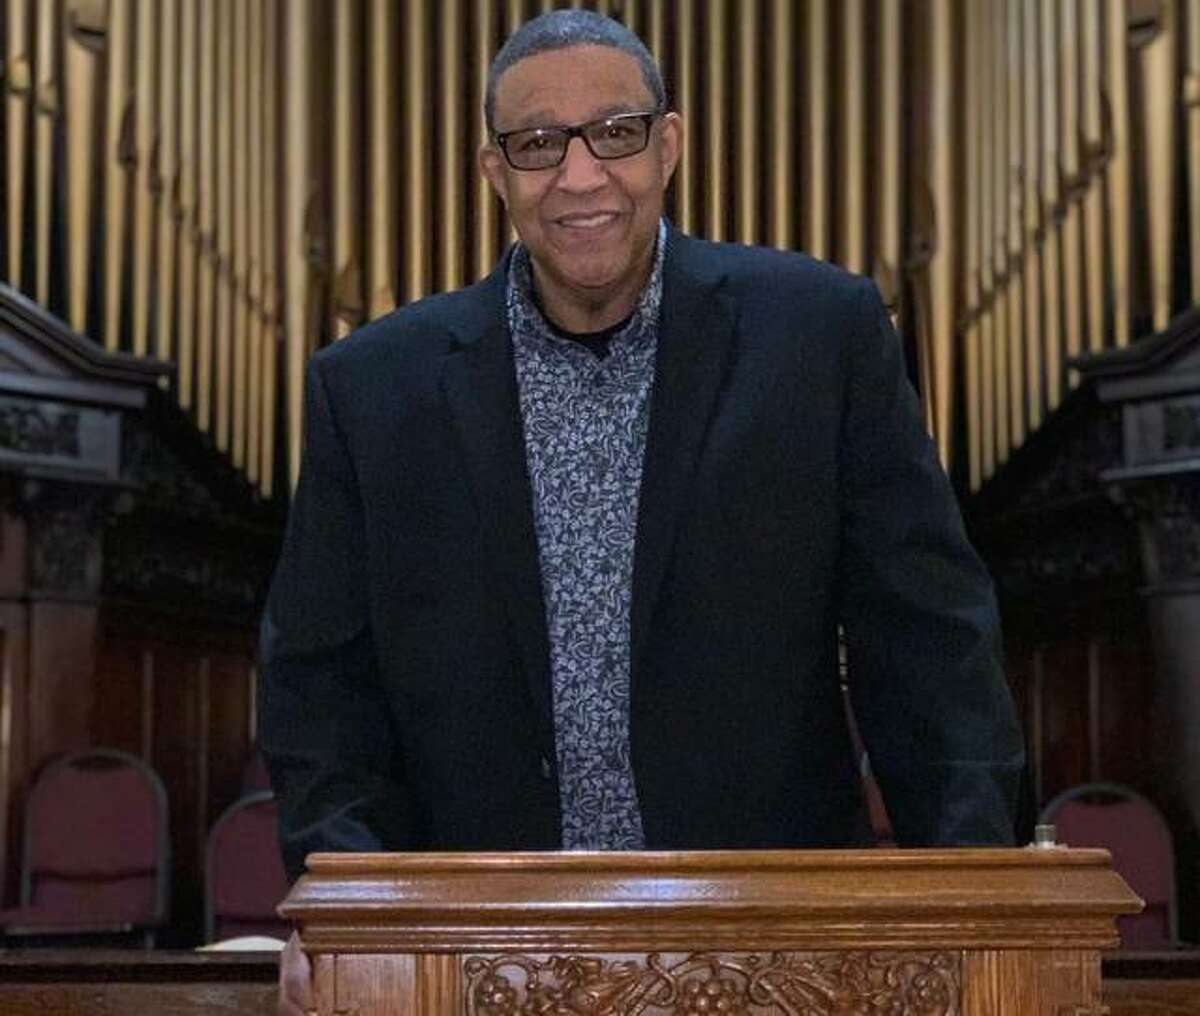 A retired Alton Police officer, David Goins has been pastor at Morning Star Missionary Baptist Church in Alton since 2001. On May 12 he becomes mayor of Alton.